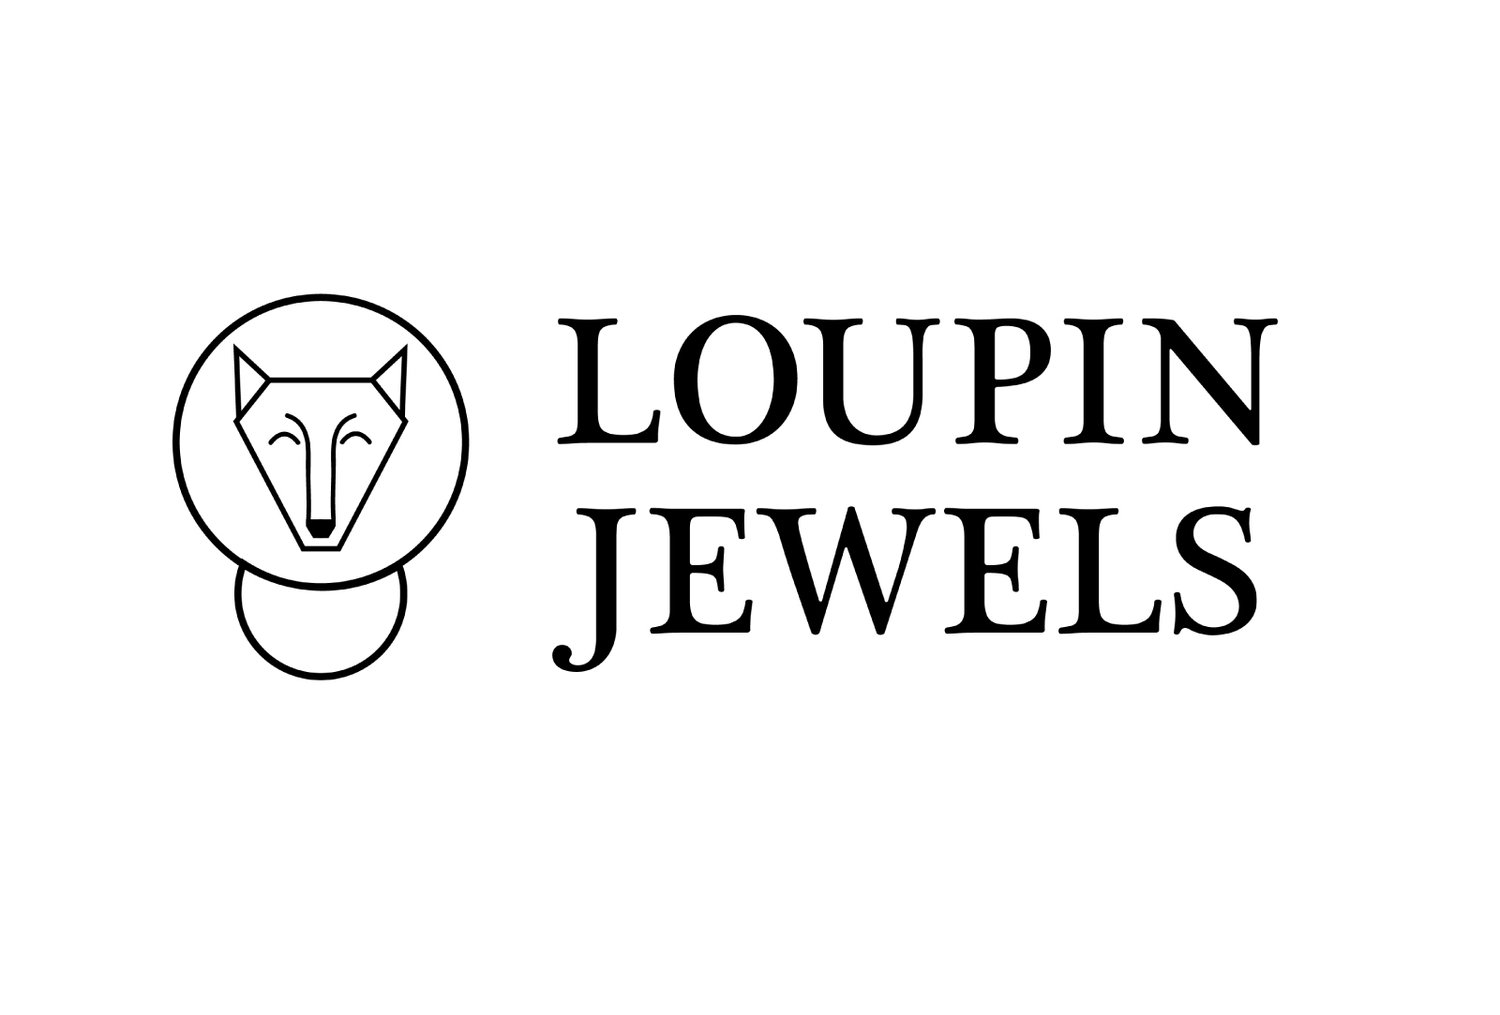 Loupin Jewels